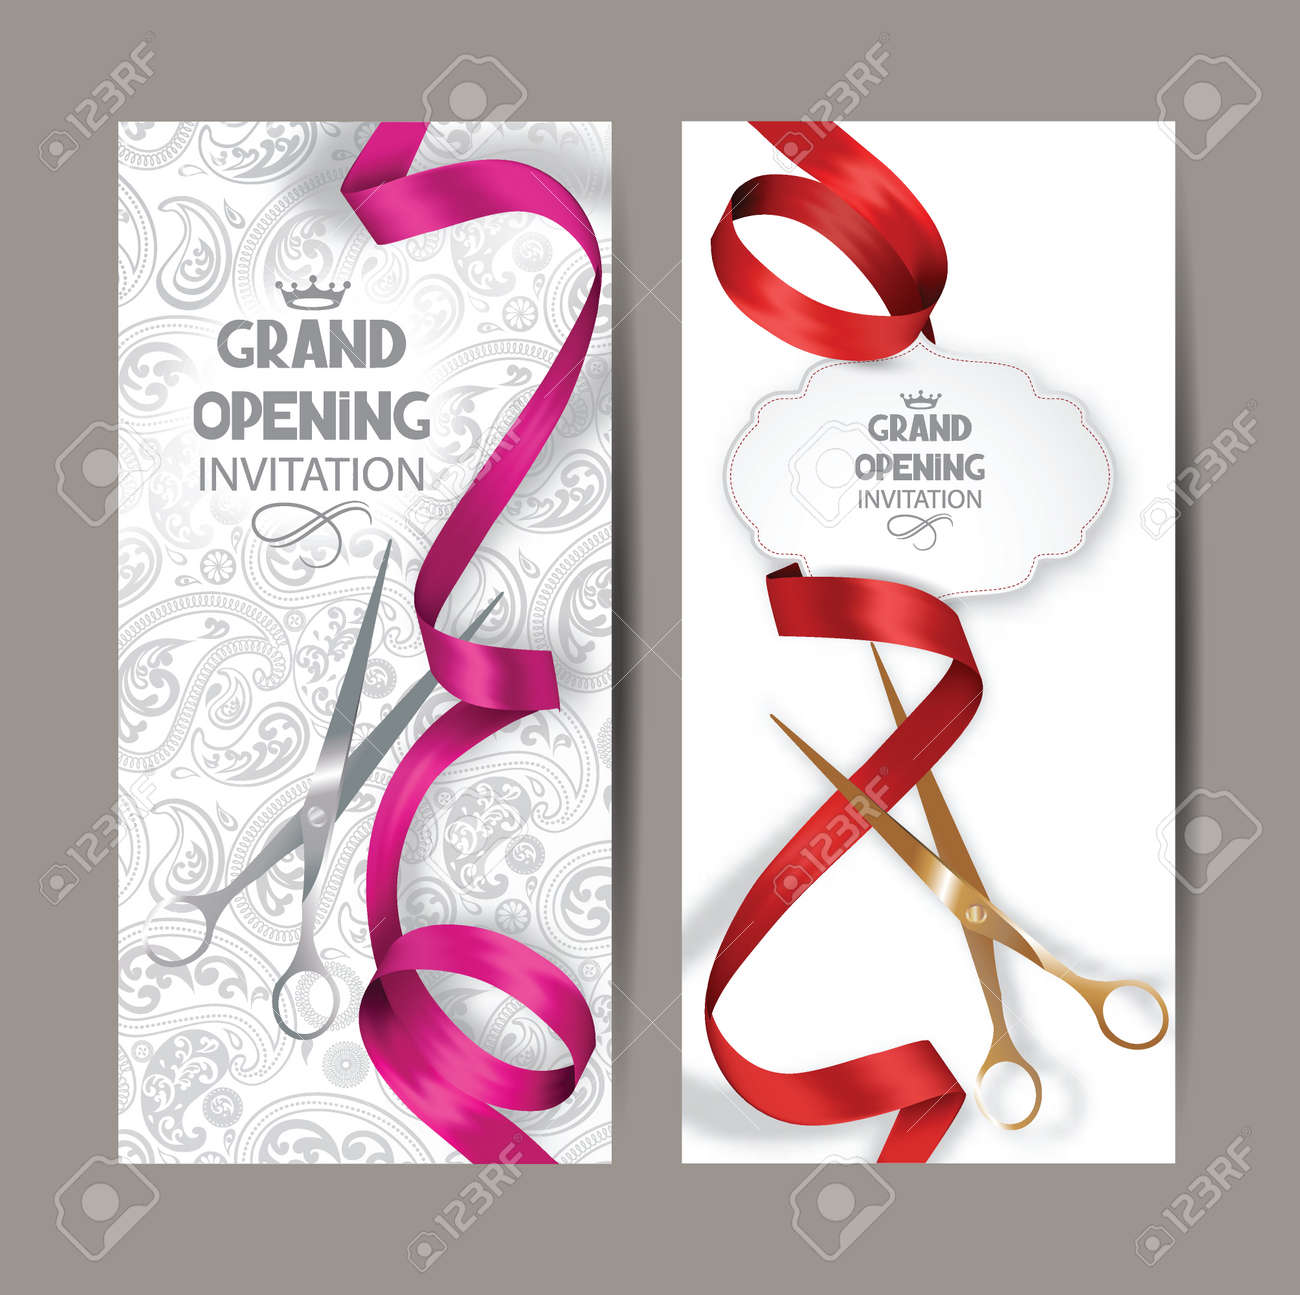 Beautiful grand opening invitation cards with red and pink silk beautiful grand opening invitation cards with red and pink silk ribbons and floral background stock vector stopboris Gallery